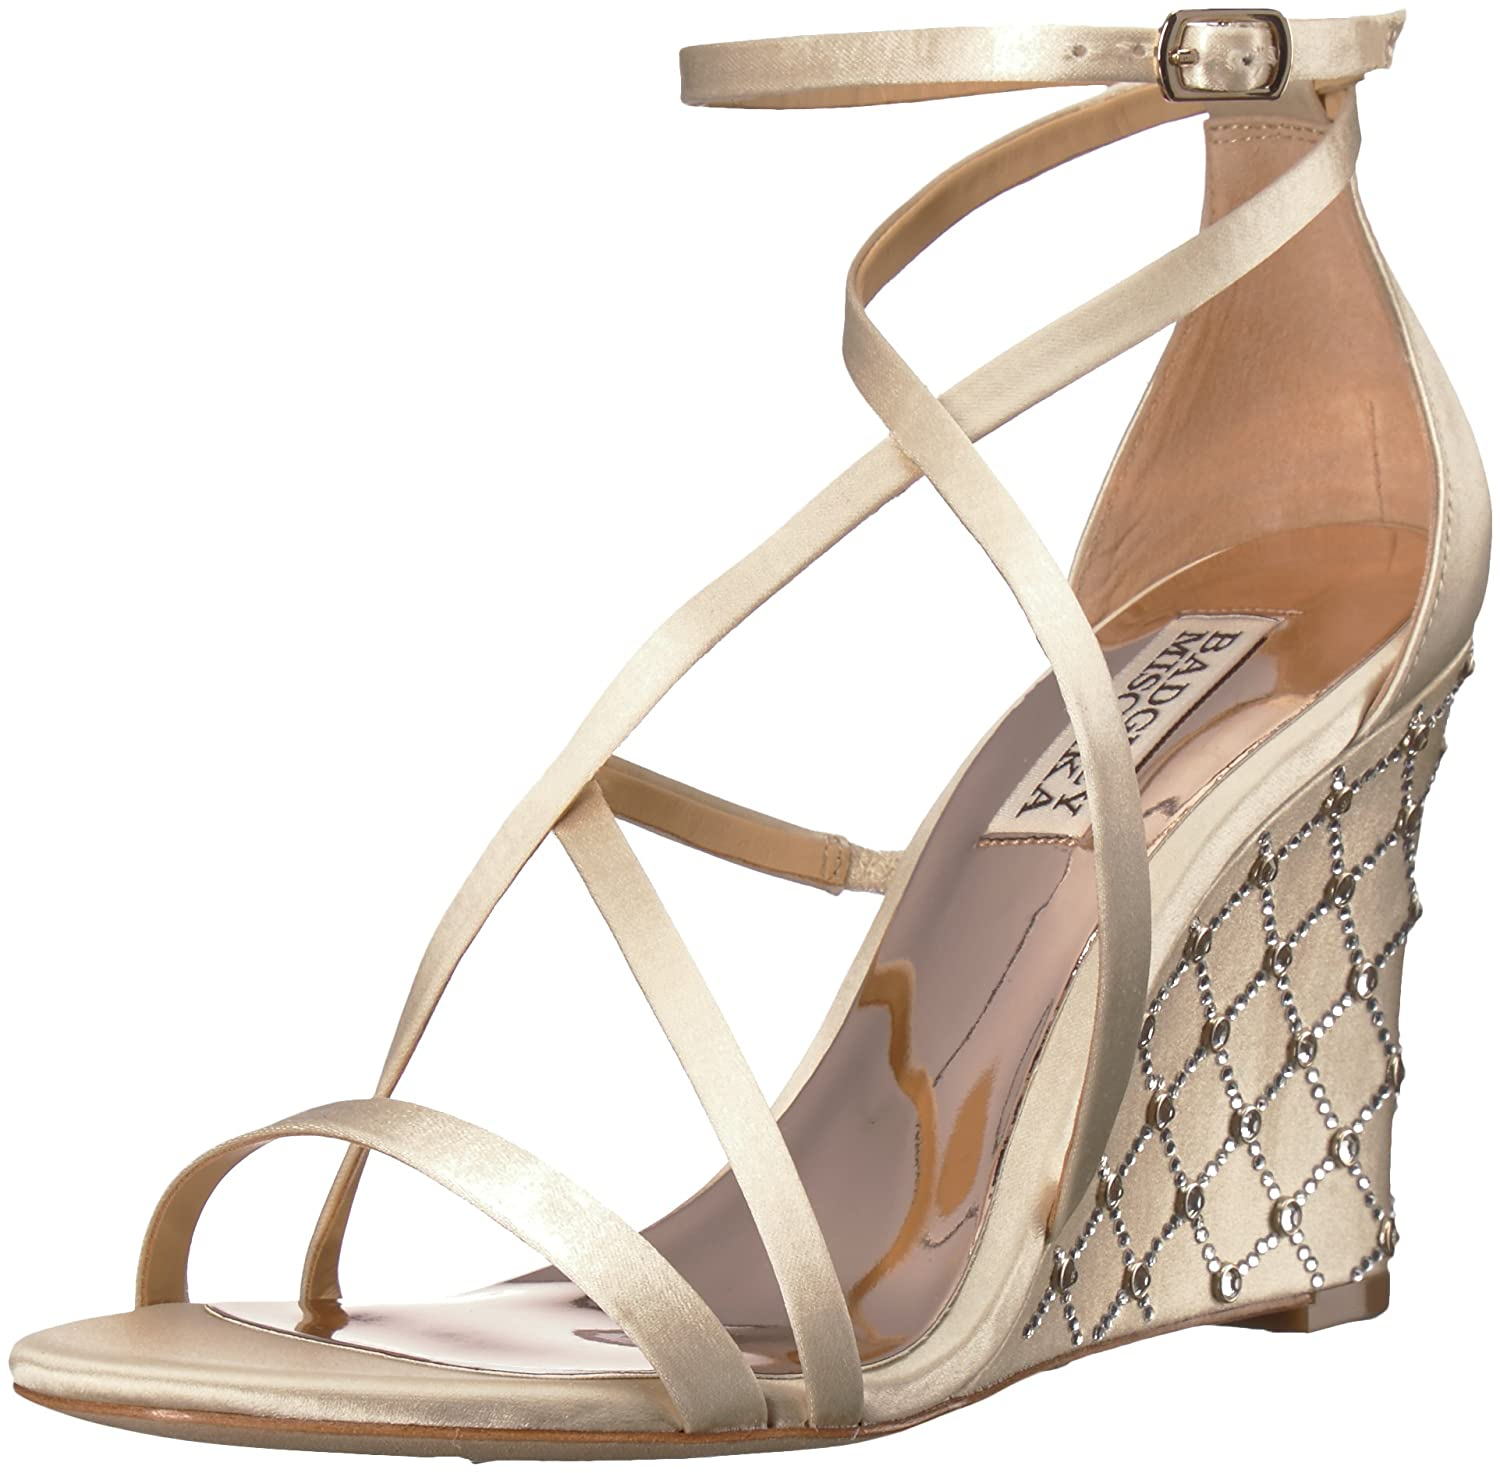 Badgley Mischka Women's Shelly Wedge Sandal MP4139